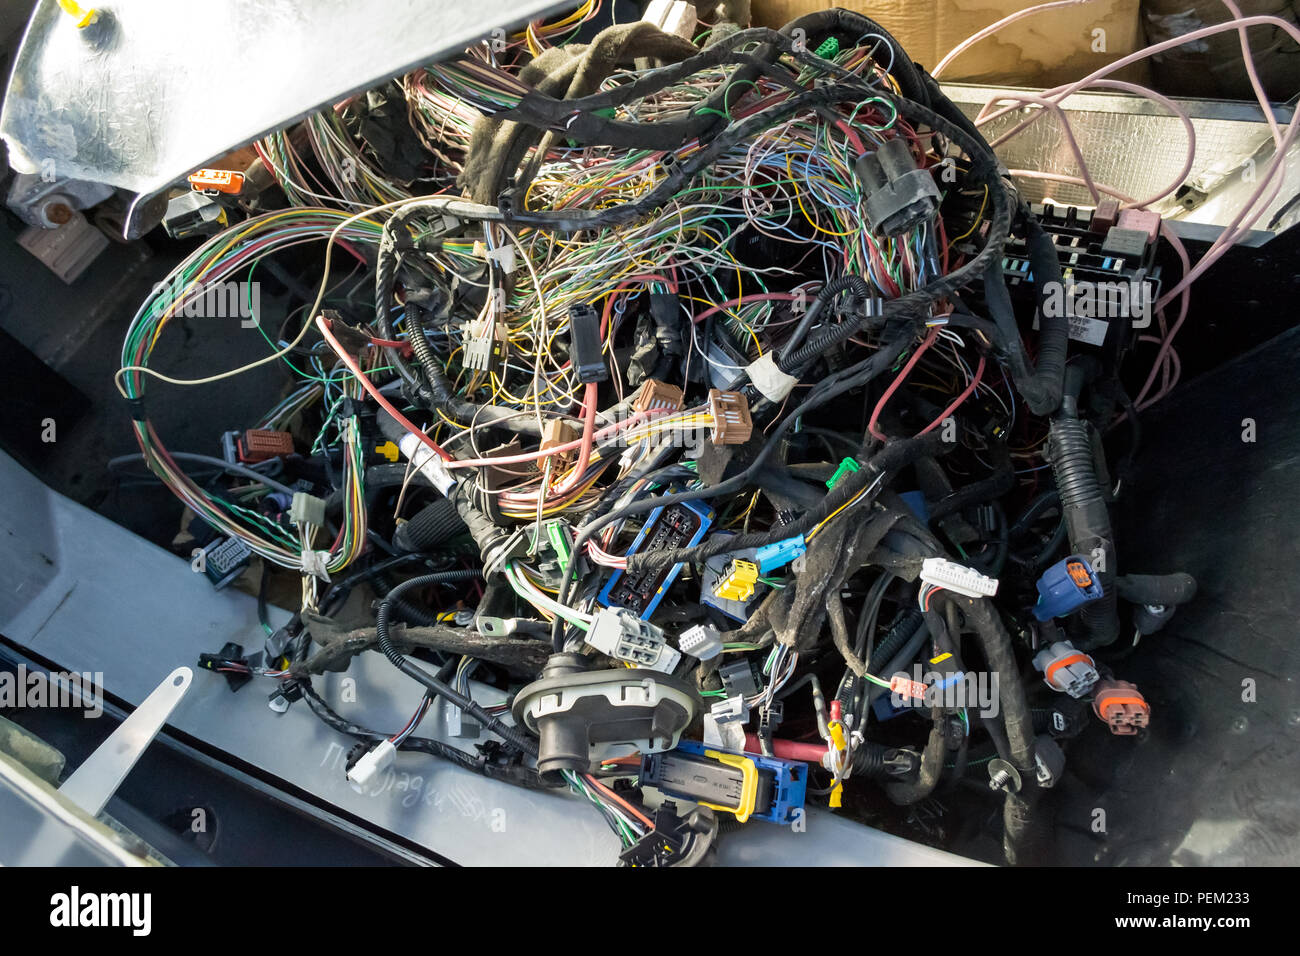 A Large Tangle Of Ravel Multicolored Wires From The Car Wiring Lies In The Cabin Of The Dismantled Car With Connectors And Plugs A View Through The W Stock Photo Alamy